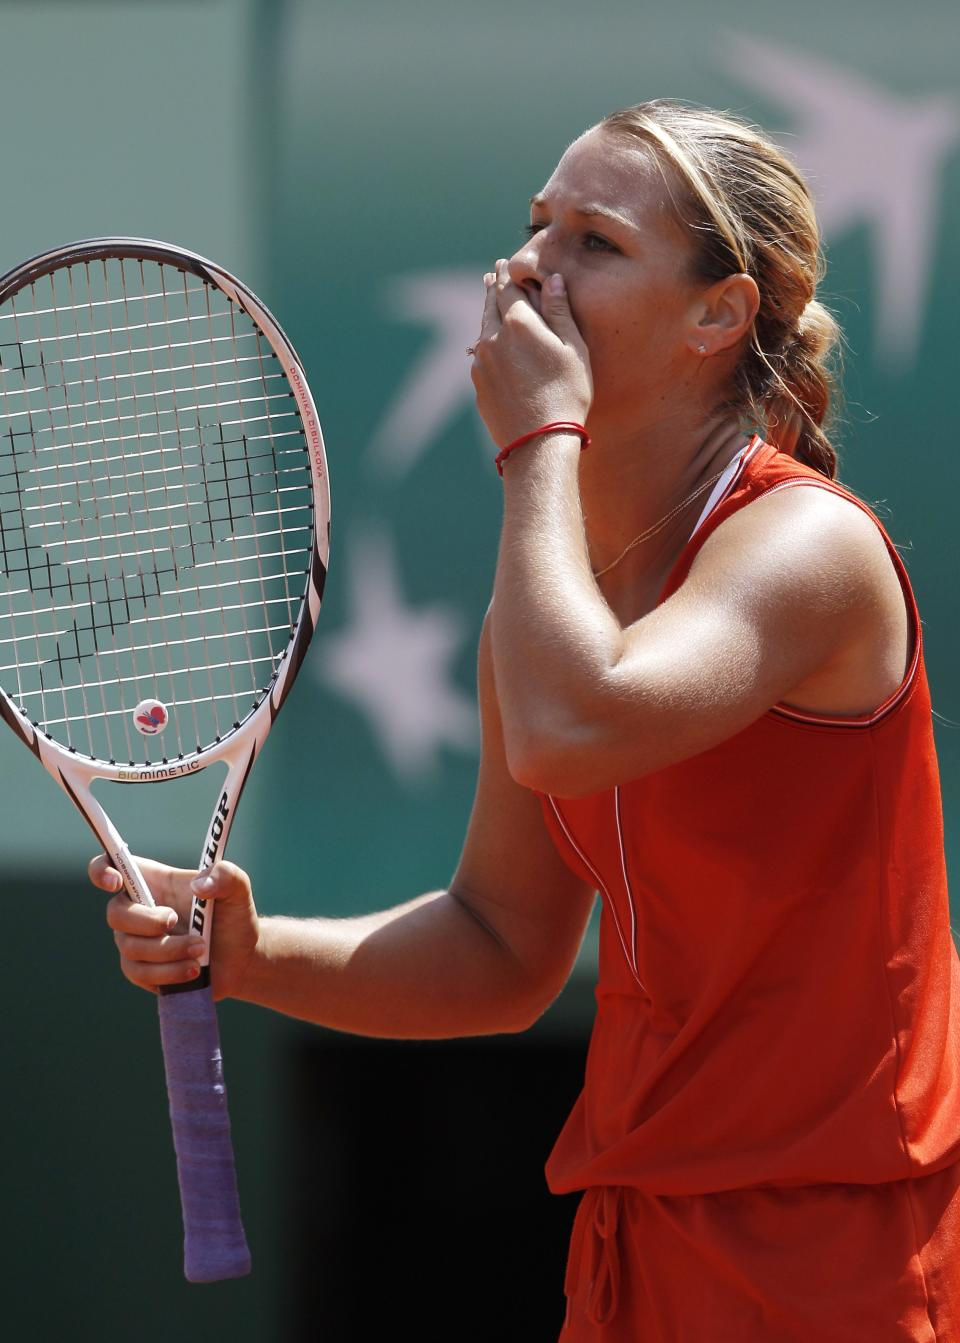 Slovakia's Dominika Cibulkova reacts as she plays Australia's Samantha Stosur during their quarterfinal match in the French Open tennis tournament at the Roland Garros stadium in Paris, Tuesday, June 5, 2012. Stosur won 6-4, 6-1. (AP Photo/Michel Spingler)